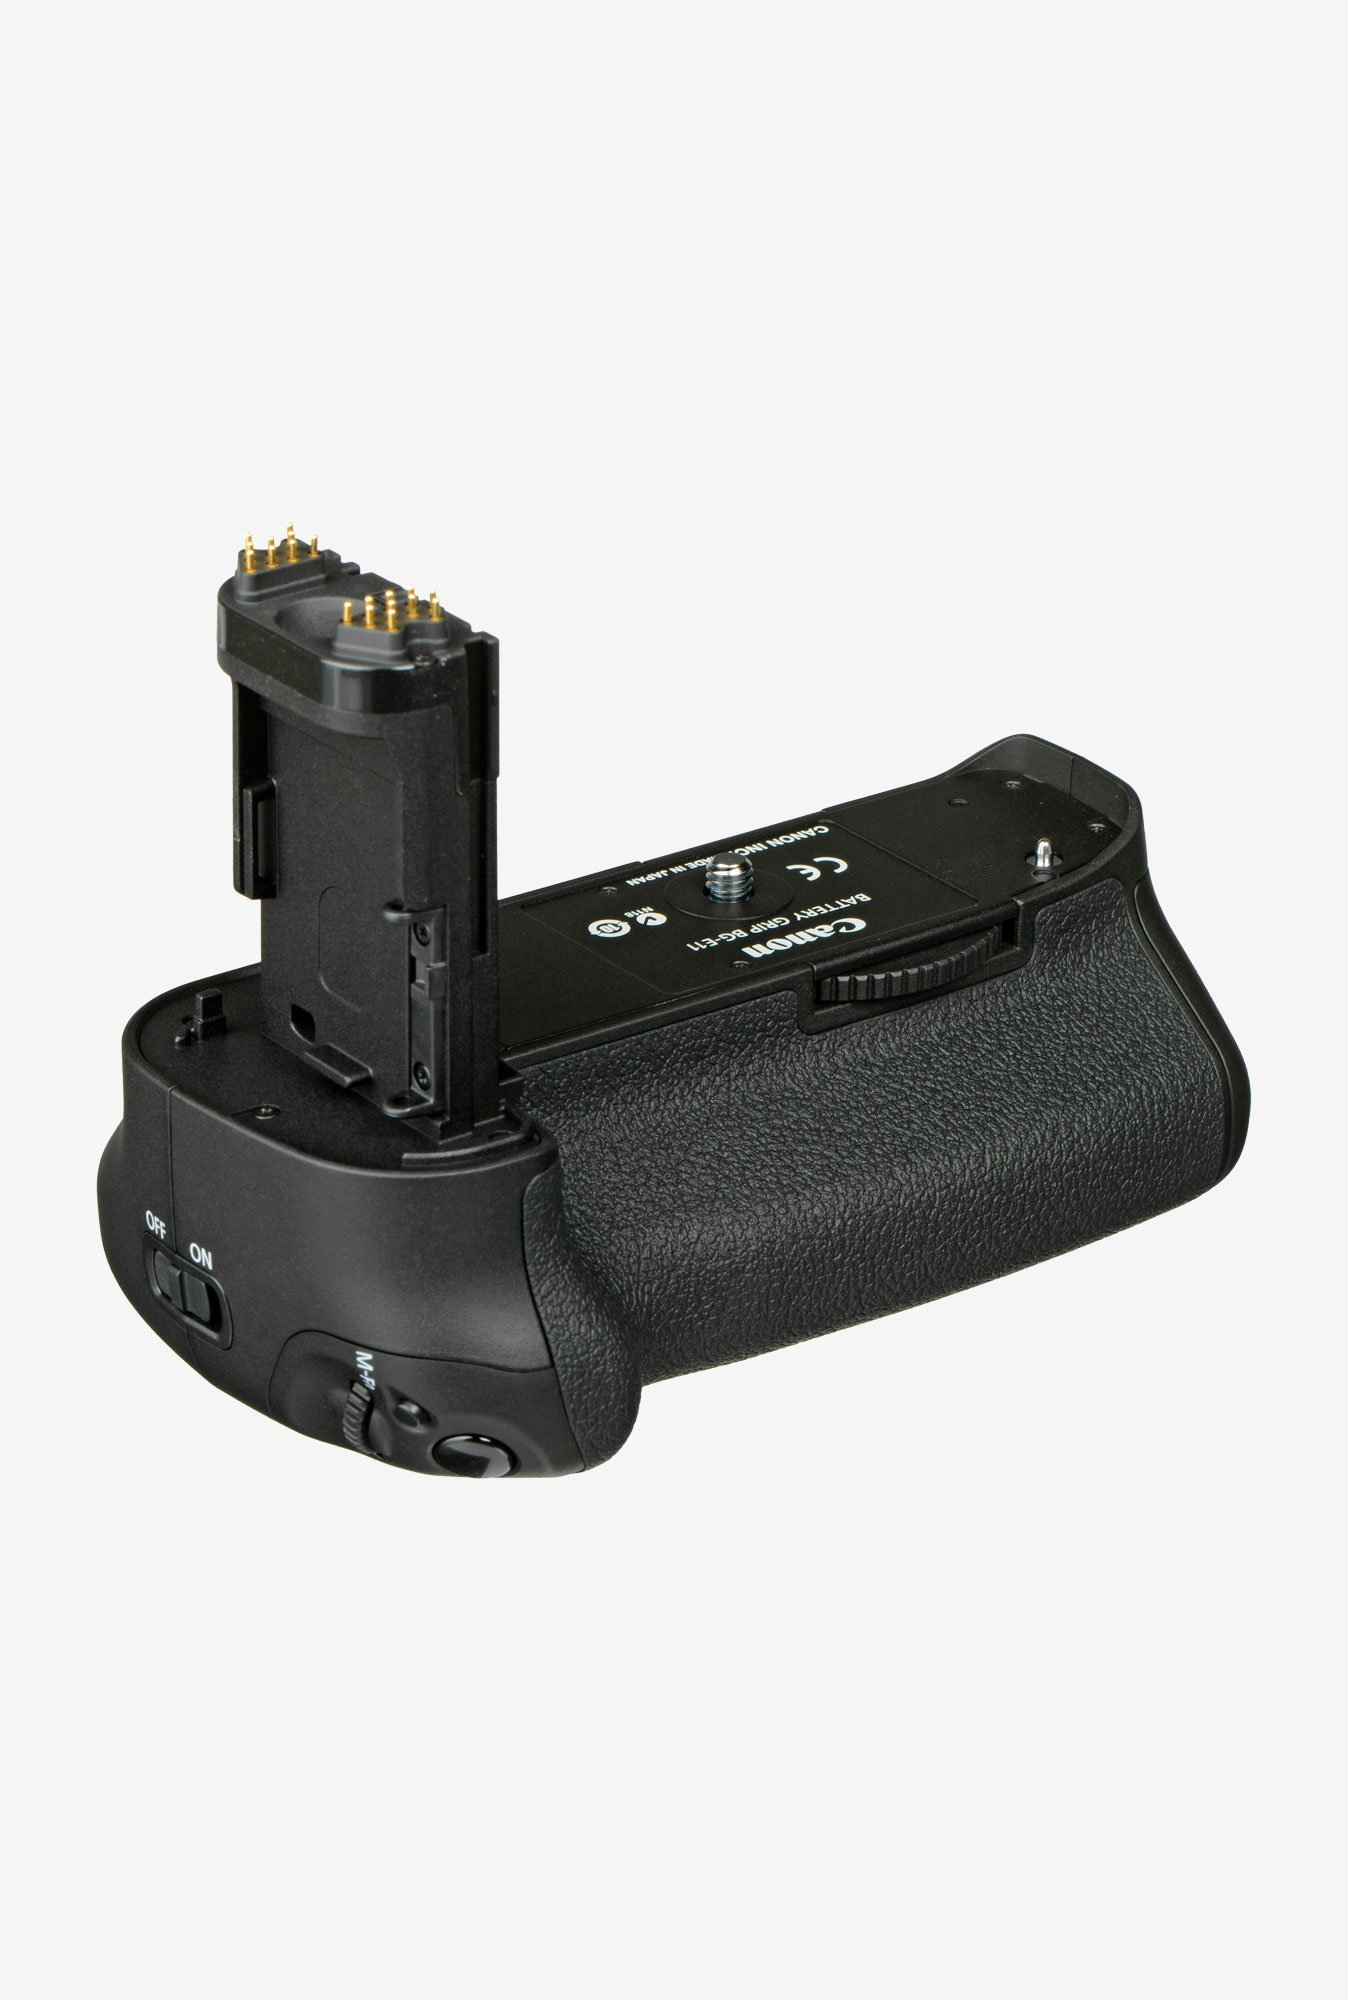 Canon BG-E11 Battery Grip Black